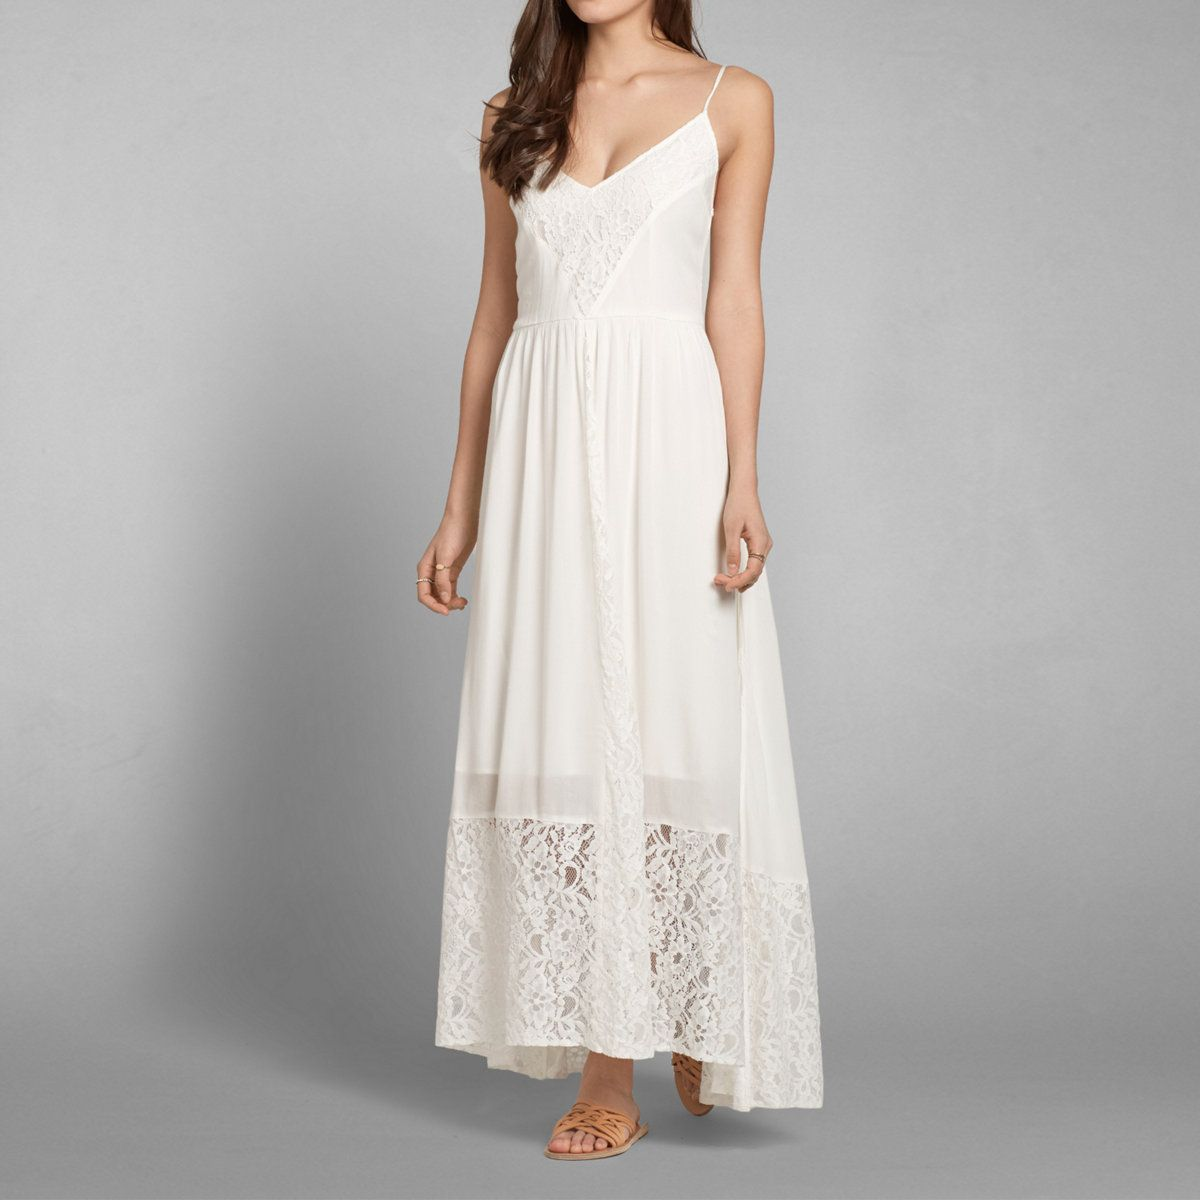 Abercrombie Accessories Abercrombie Accessories Abercrombie Womens Abercrombie Couple Abercrombie Womens: Womens Drapey Lace Maxi Dress